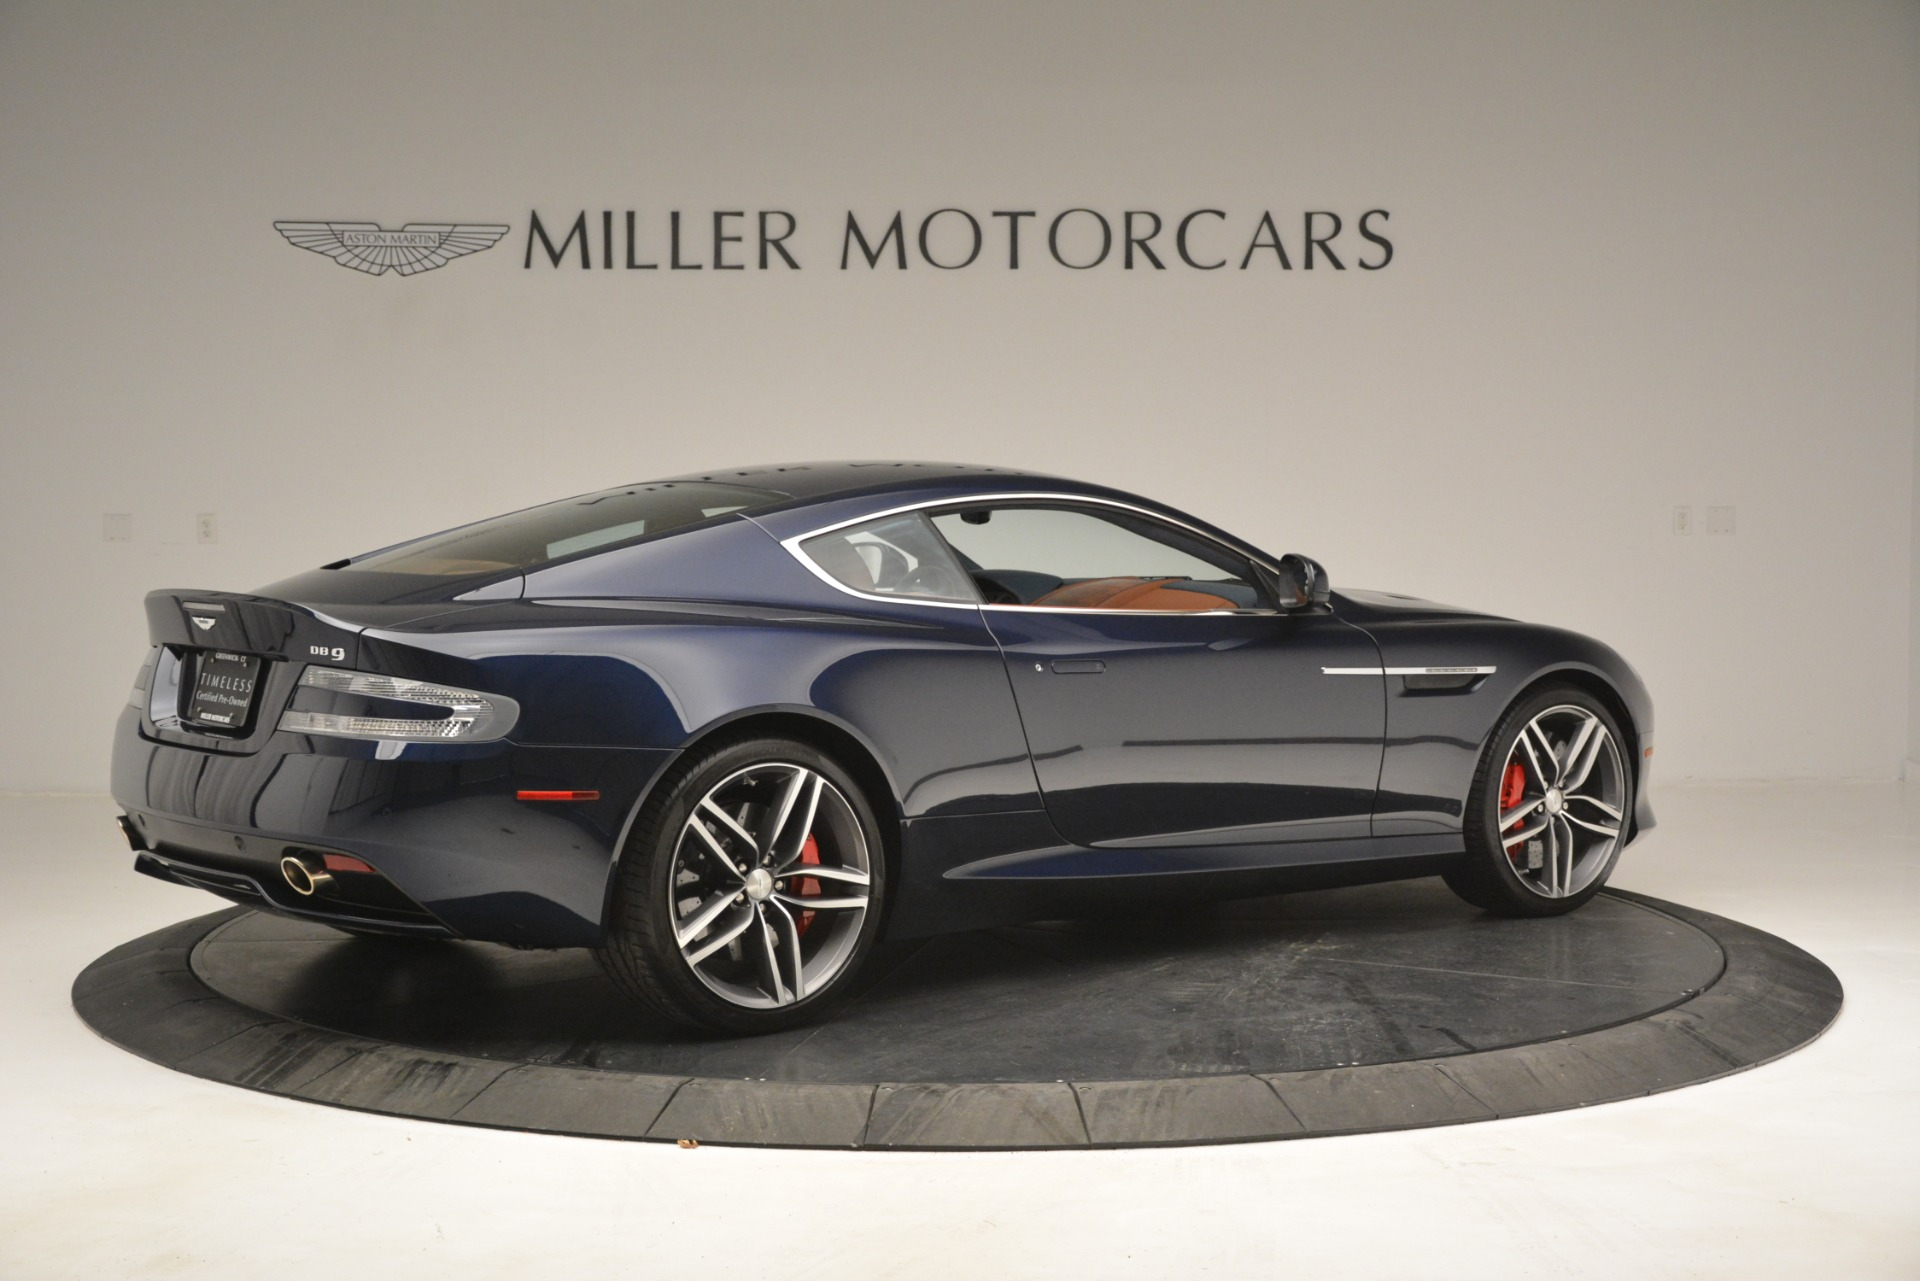 Used 2014 Aston Martin DB9 Coupe For Sale In Westport, CT 3010_p8